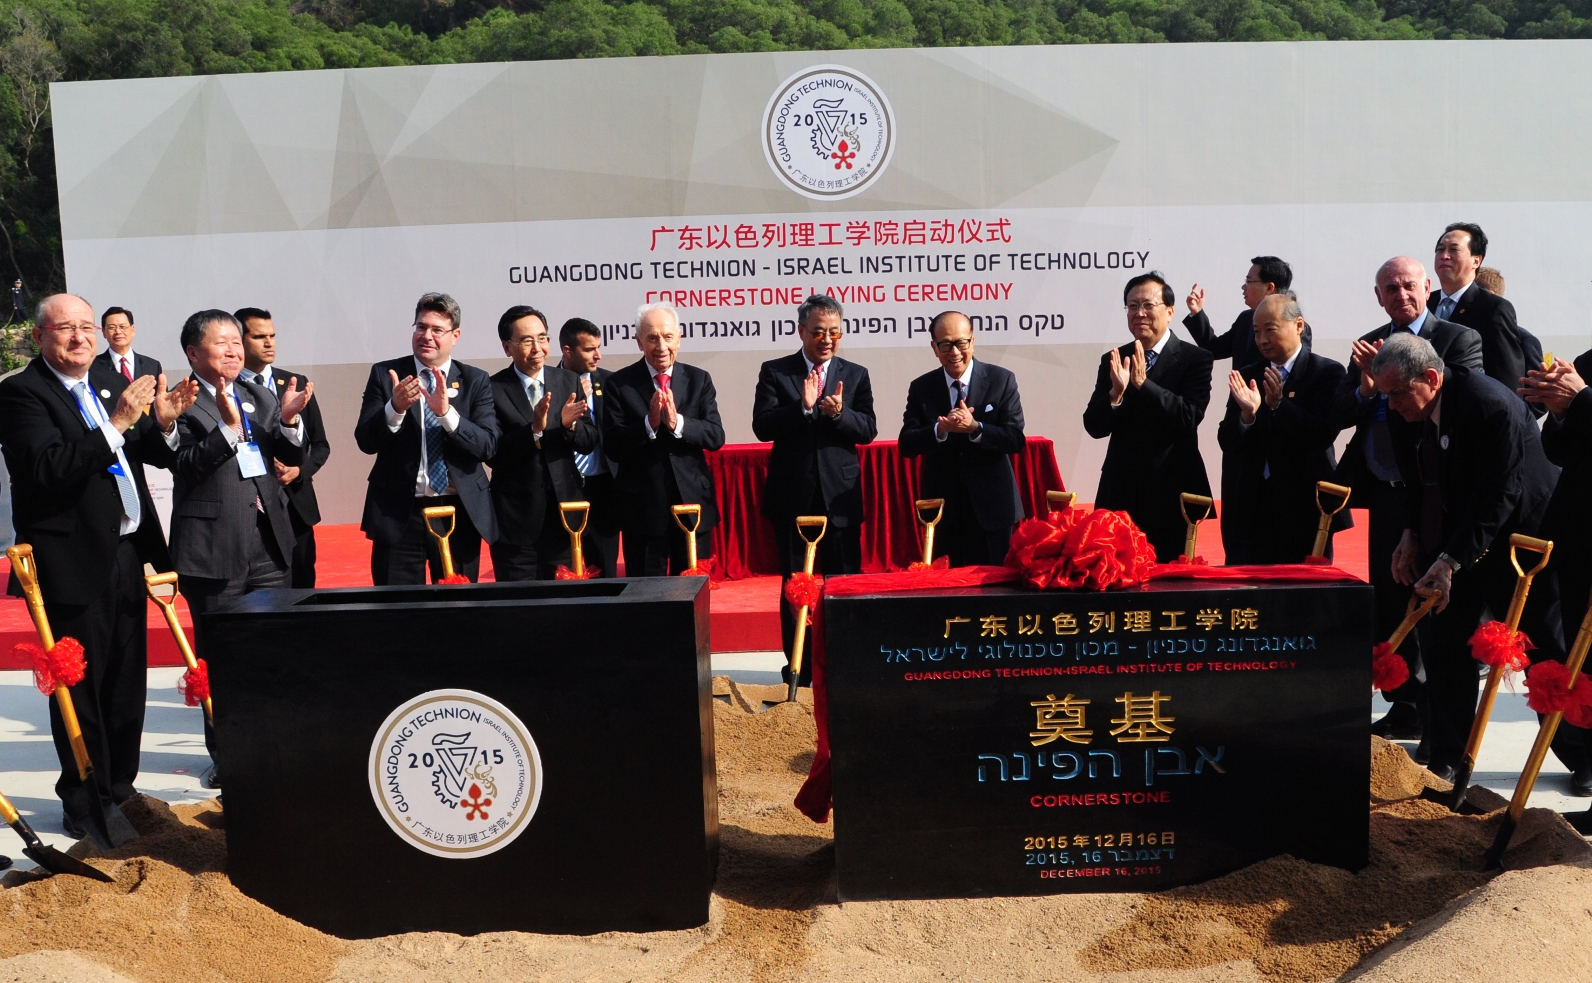 Groundbreaking for the Guangdong Technion Israel Institute of Technology in December 2015. Photo courtesy of the government of Guangdong Province